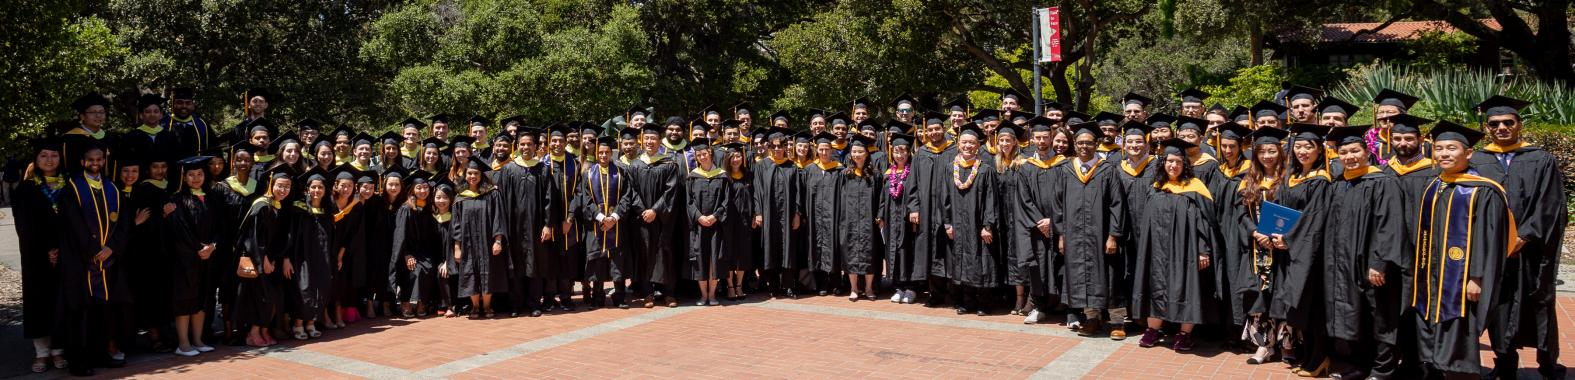 commencement May 2018 group photo